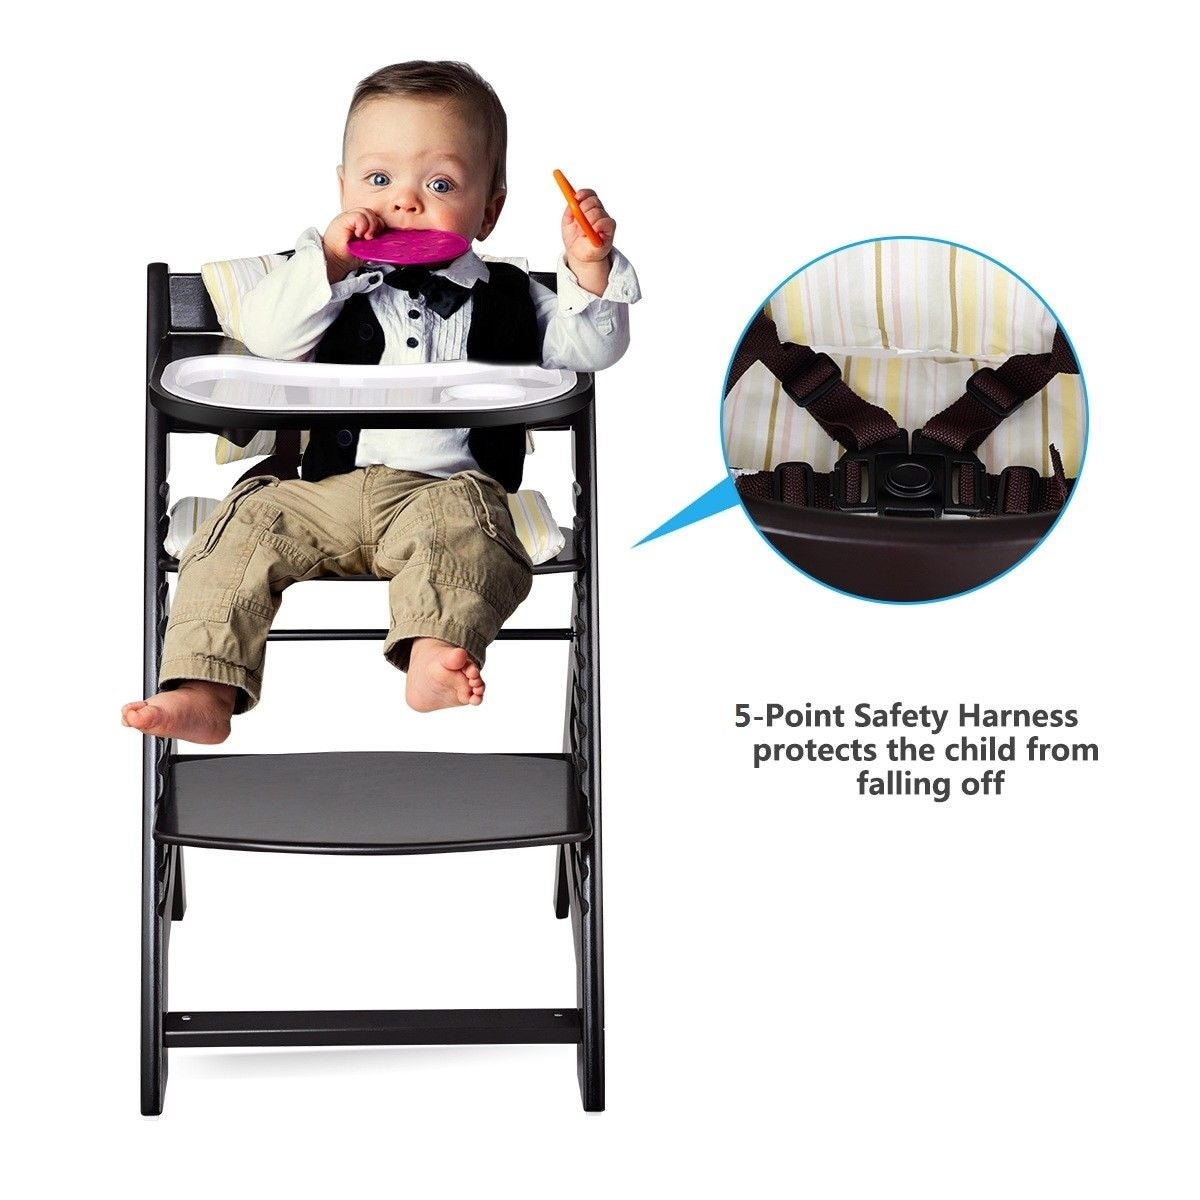 e1a18d38d640 Shop Costway Baby Toddler Wooden Highchair Dining Chair Adjustable Height  w/ Removeable Tray - Black - Free Shipping Today - Overstock - 23081677